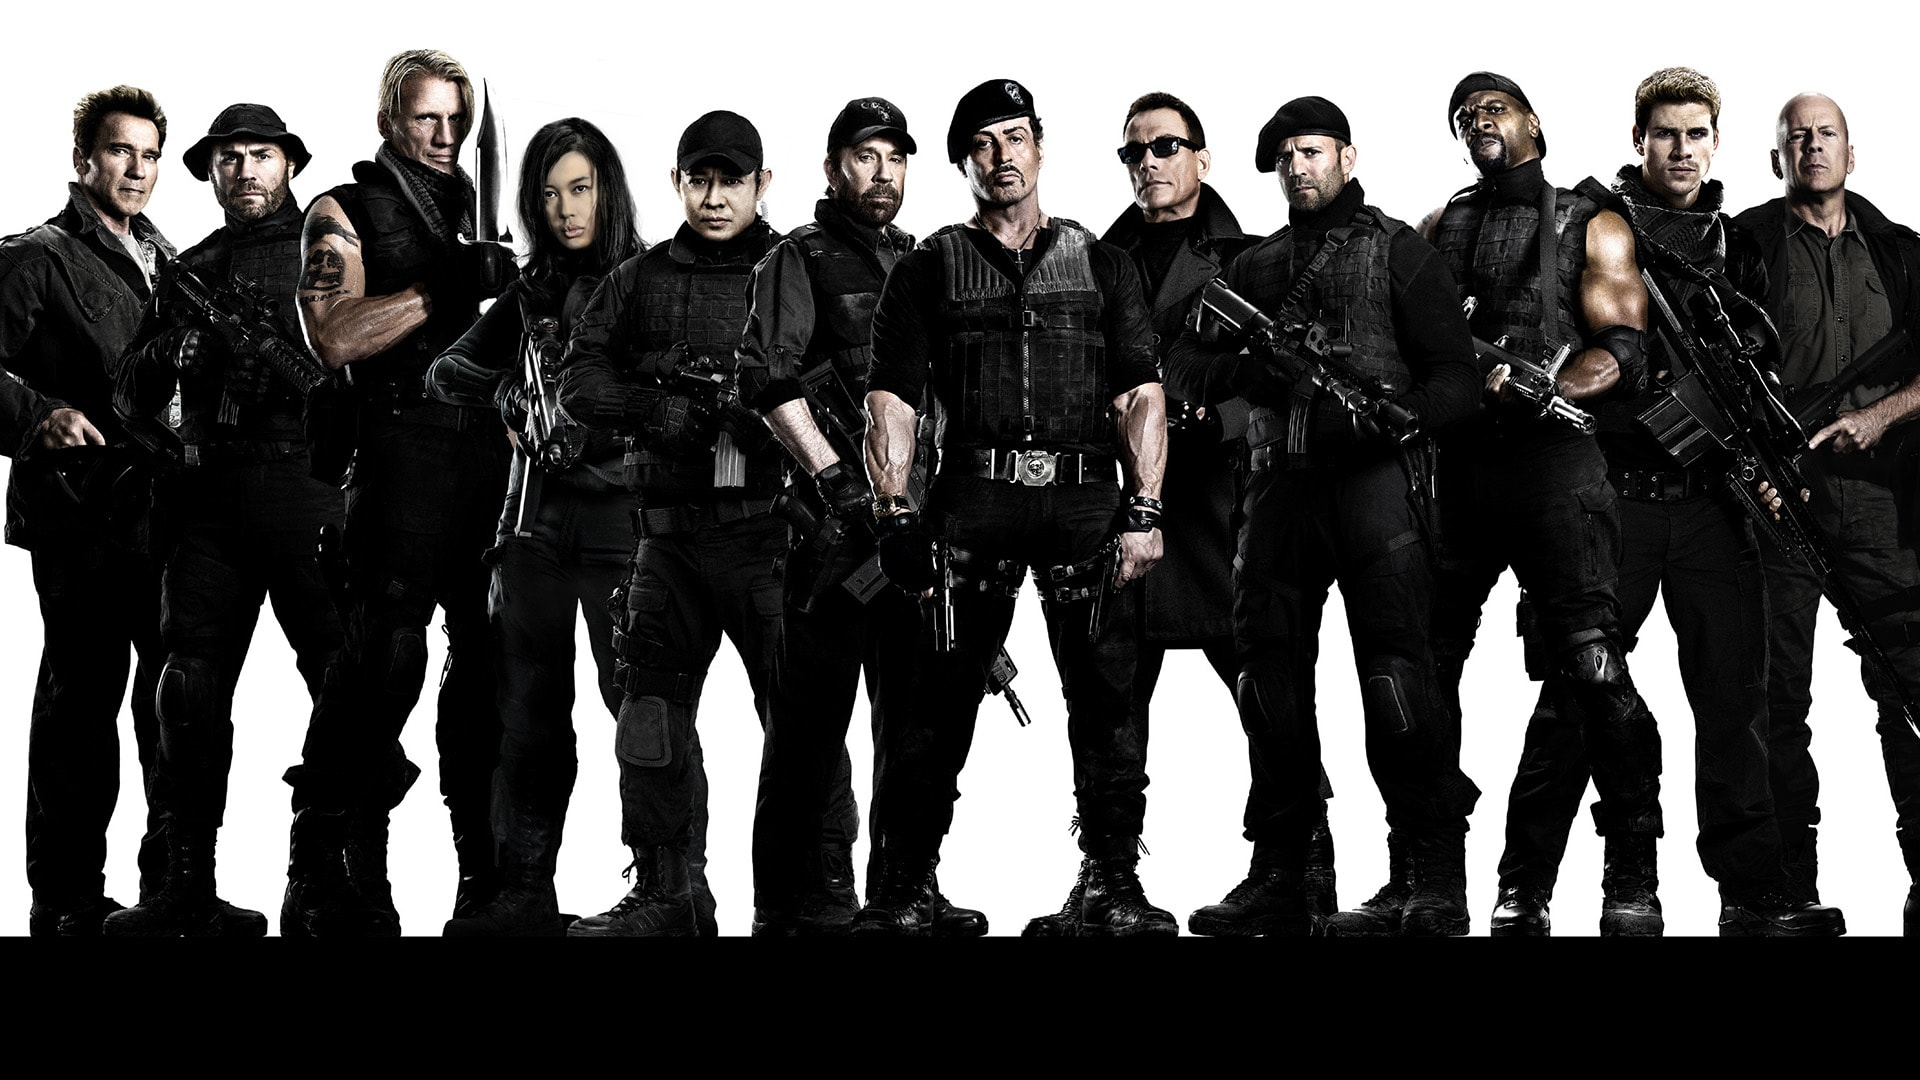 The Expendables 3 Wallpaper